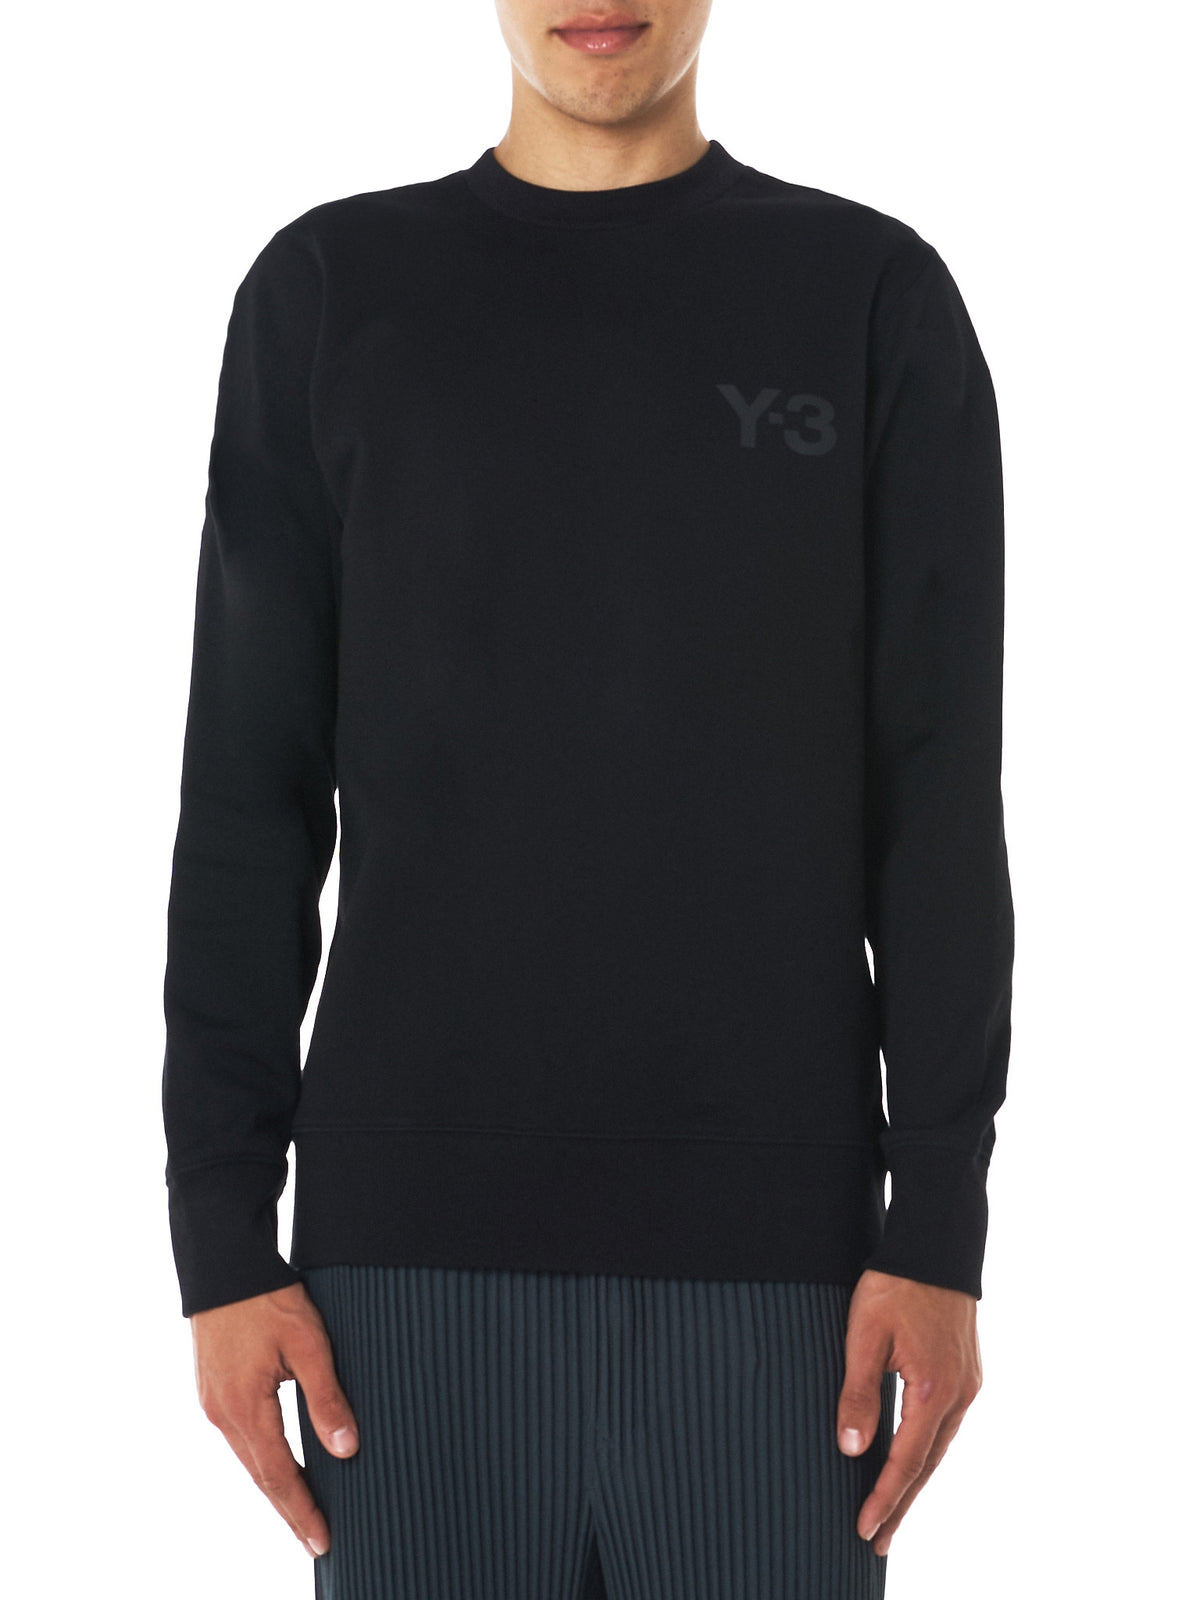 Y-3 - Hlorenzo Front View